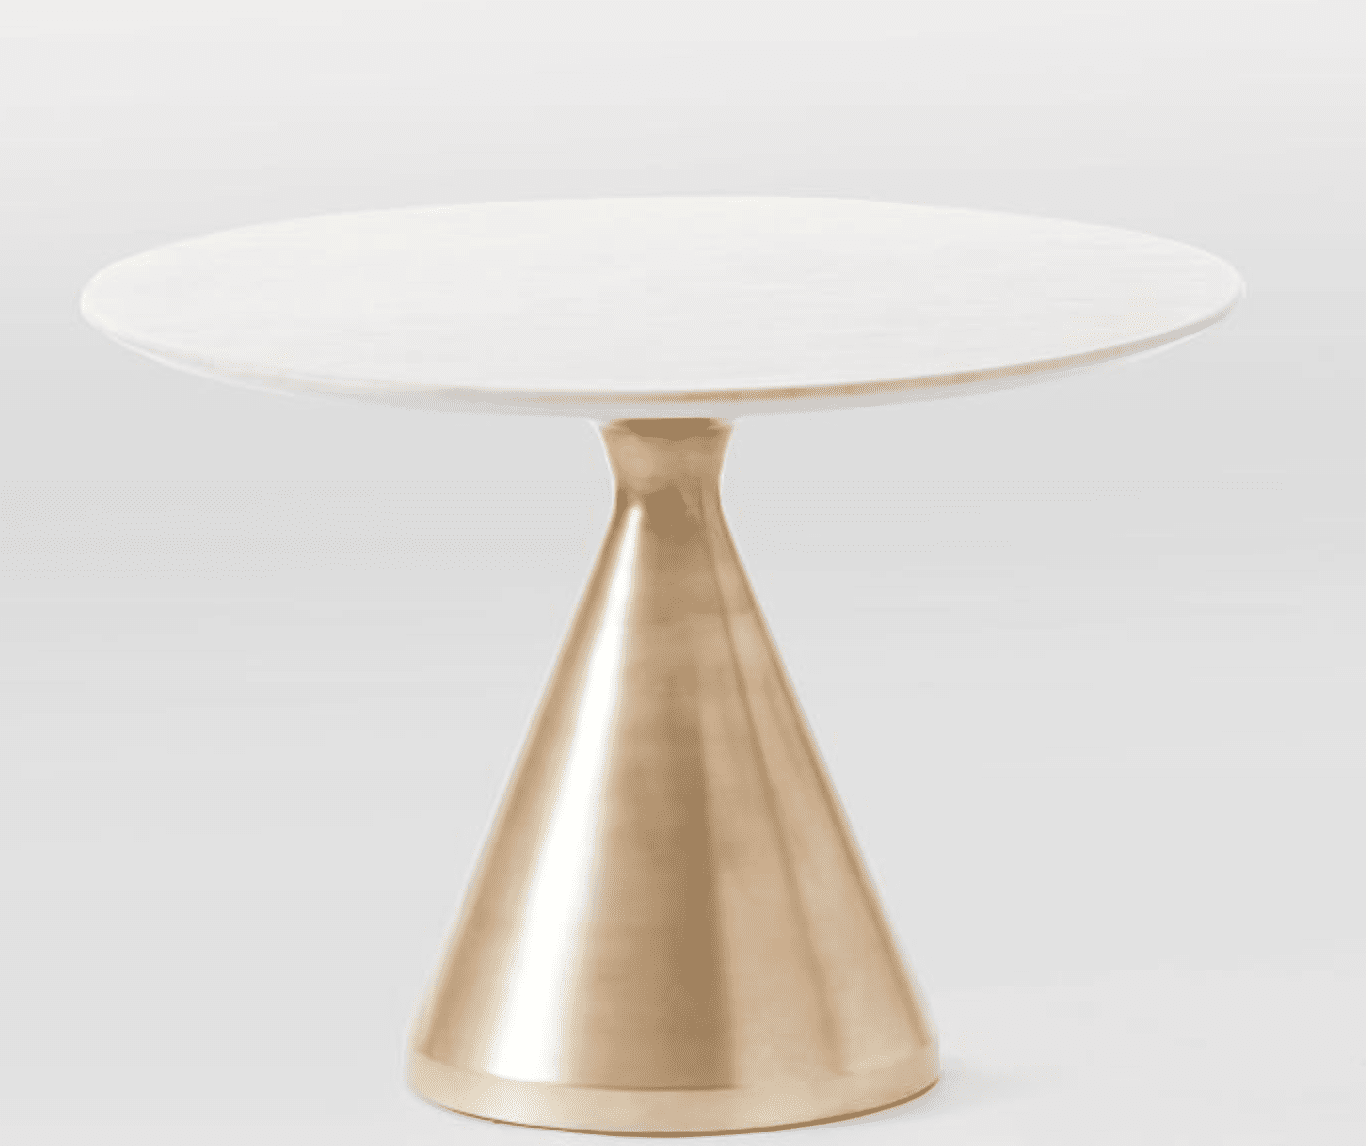 Silhouette Pedestal Round Dining Table by West Elm